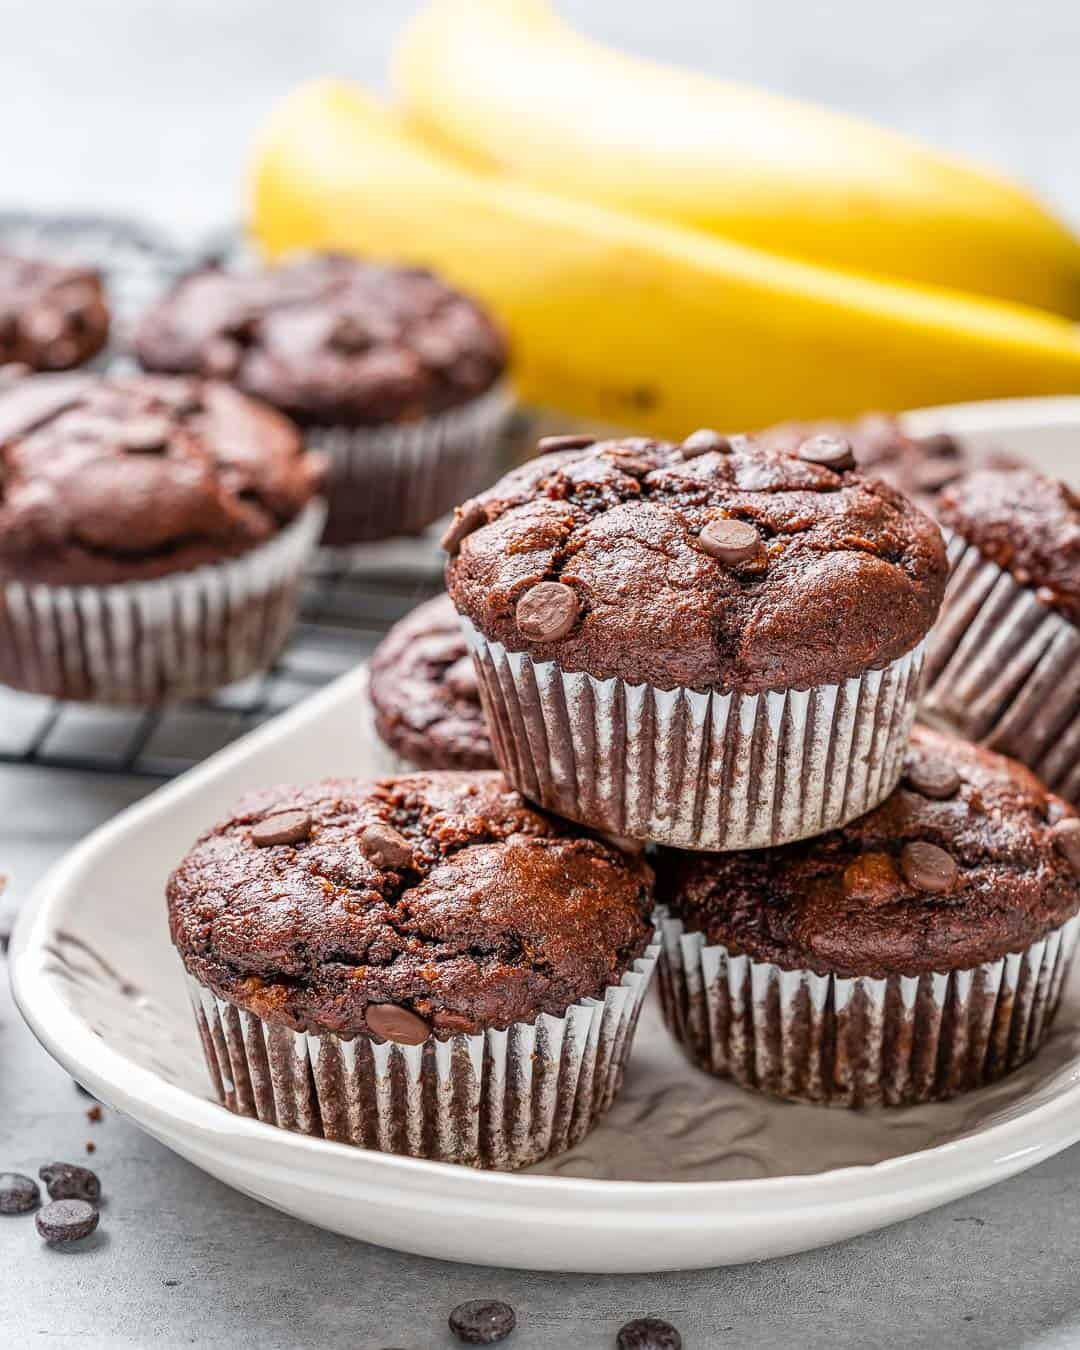 White tray of healthy chocolate peanut butter banana muffins with bananas in background